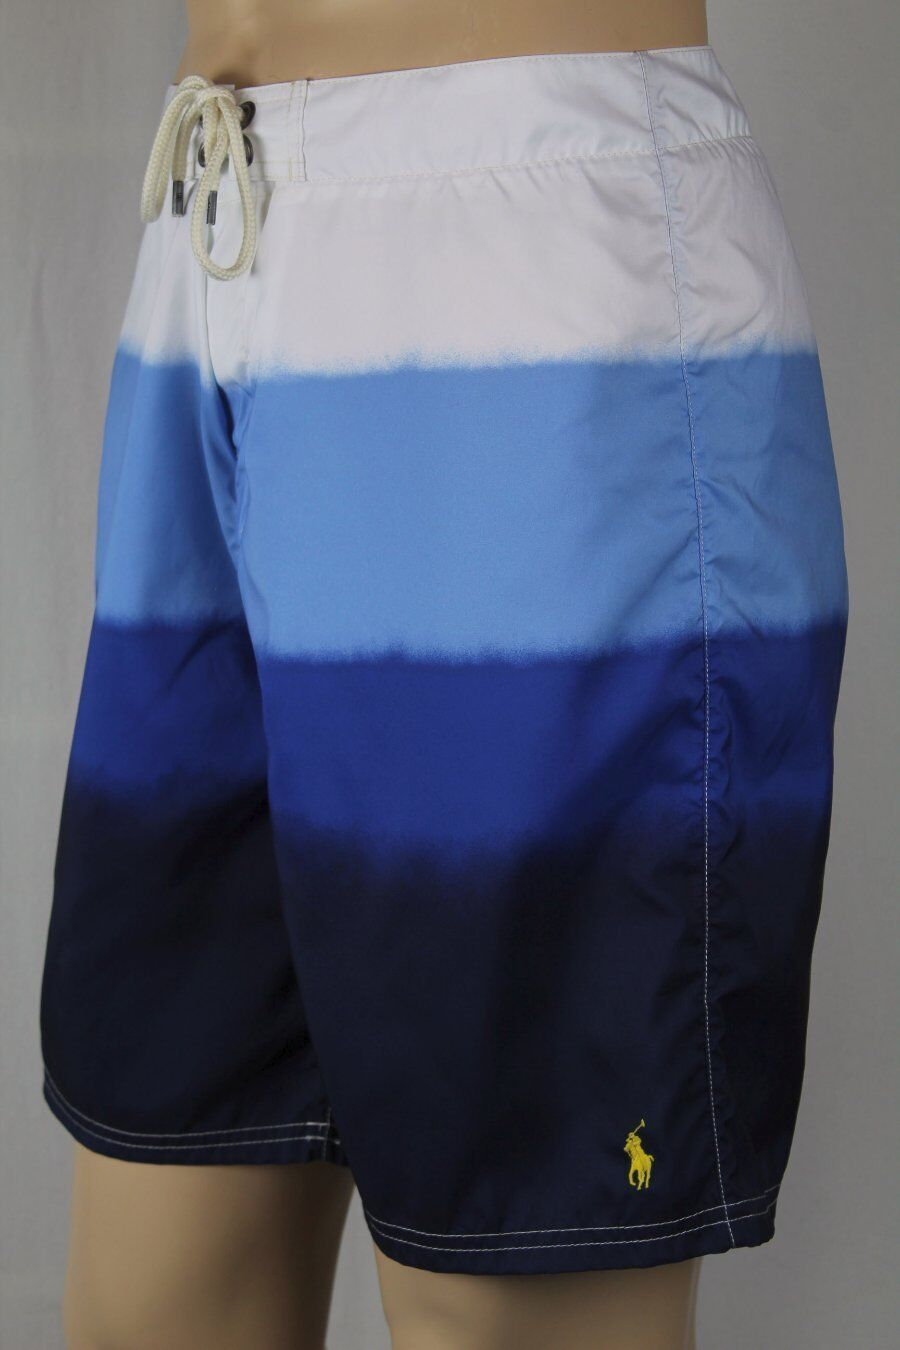 Polo Ralph Lauren bluee White Dip Dye Swim Board Shorts Trunks Yellow Pony NWT